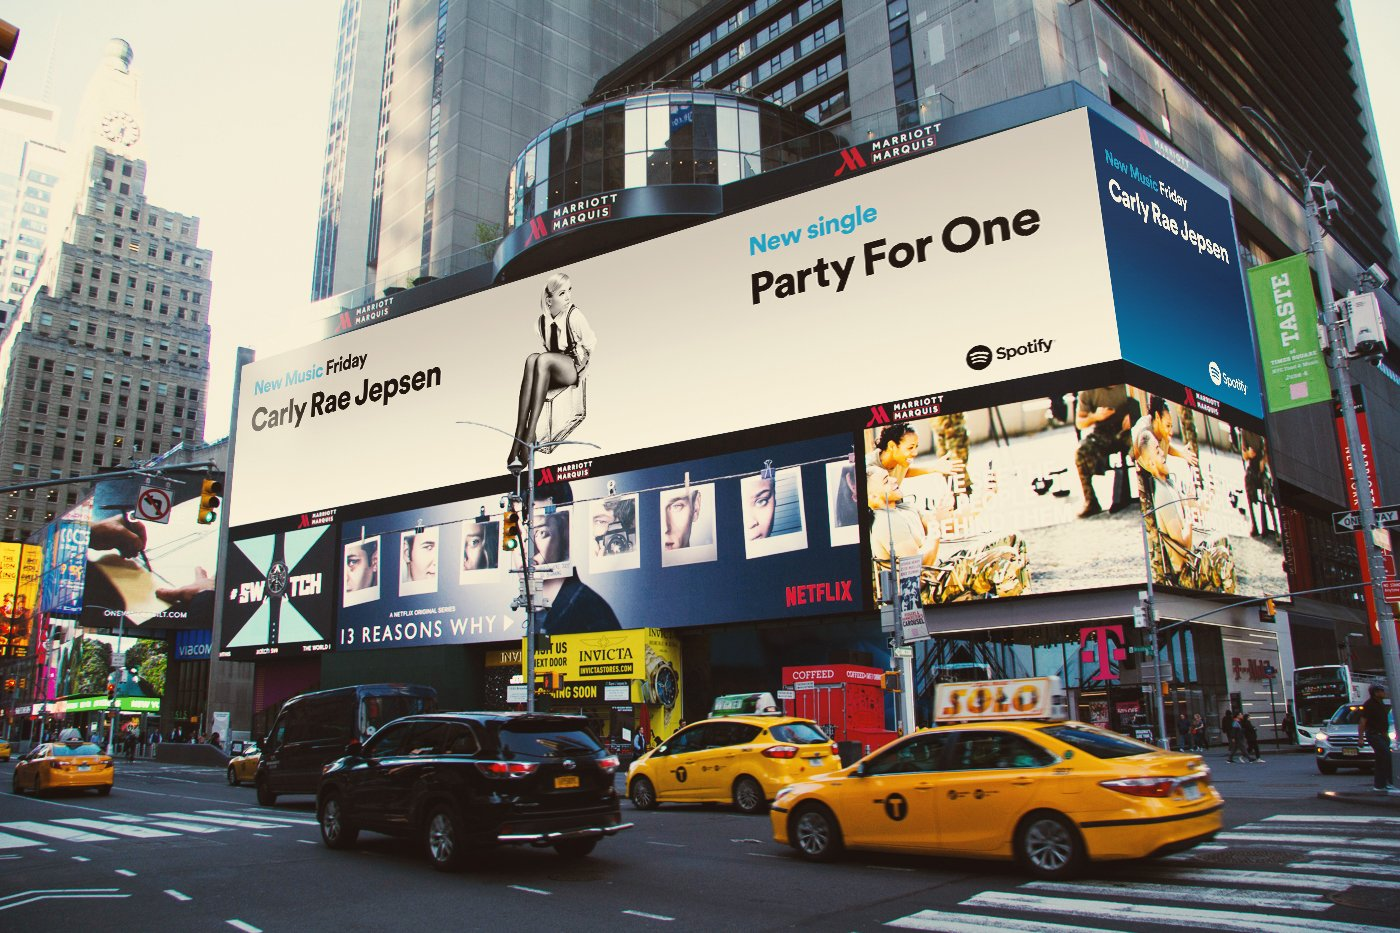 Ahhh thank you @spotify for including #PartyForOne on NMF and in Times Square!! �� https://t.co/AEqBJUnY7z